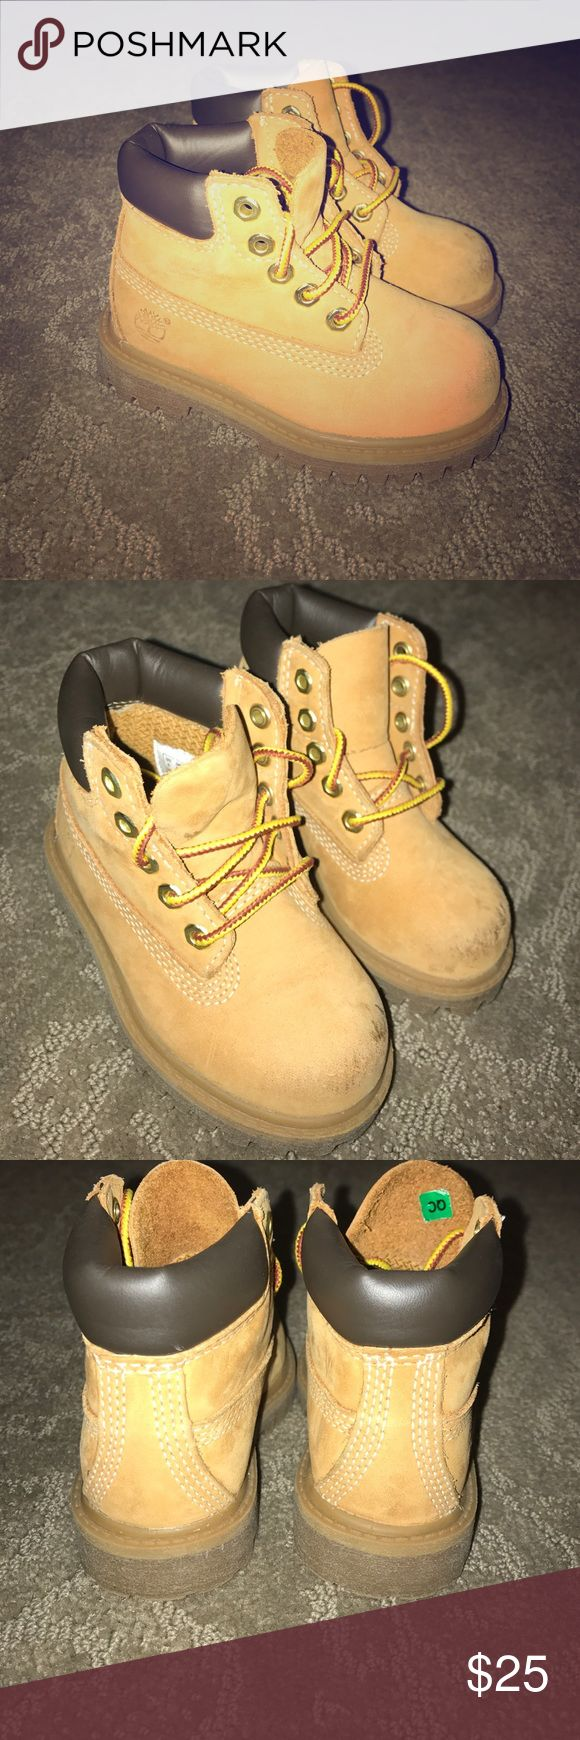 Toddler Timberland Boots Toddler Timberland Boots with minor wear on toes. Ends of laces are frayed but could be replaced. Super cute boots for boy or girl. Timberland Shoes